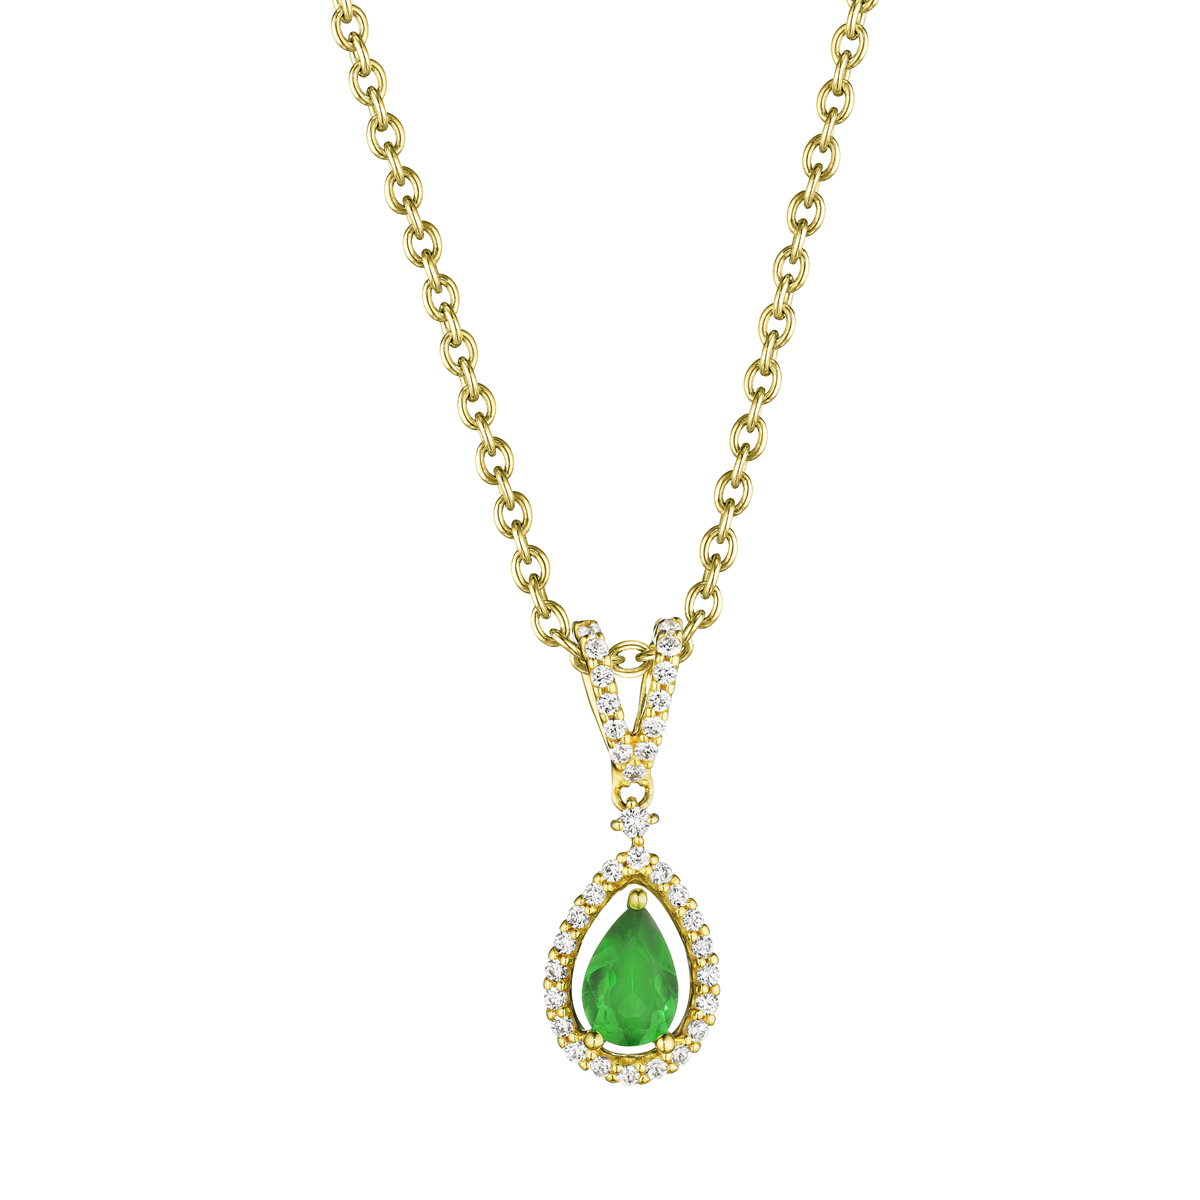 Pear Shape Emerald and Diamond Pendant - This pear shape emerald and diamond pendant comes in a variety of material types like 14k white gold, yellow gold, rose gold and can be customized with your jeweler. Fana gemstone earrings are perfect for that special woman in your life.